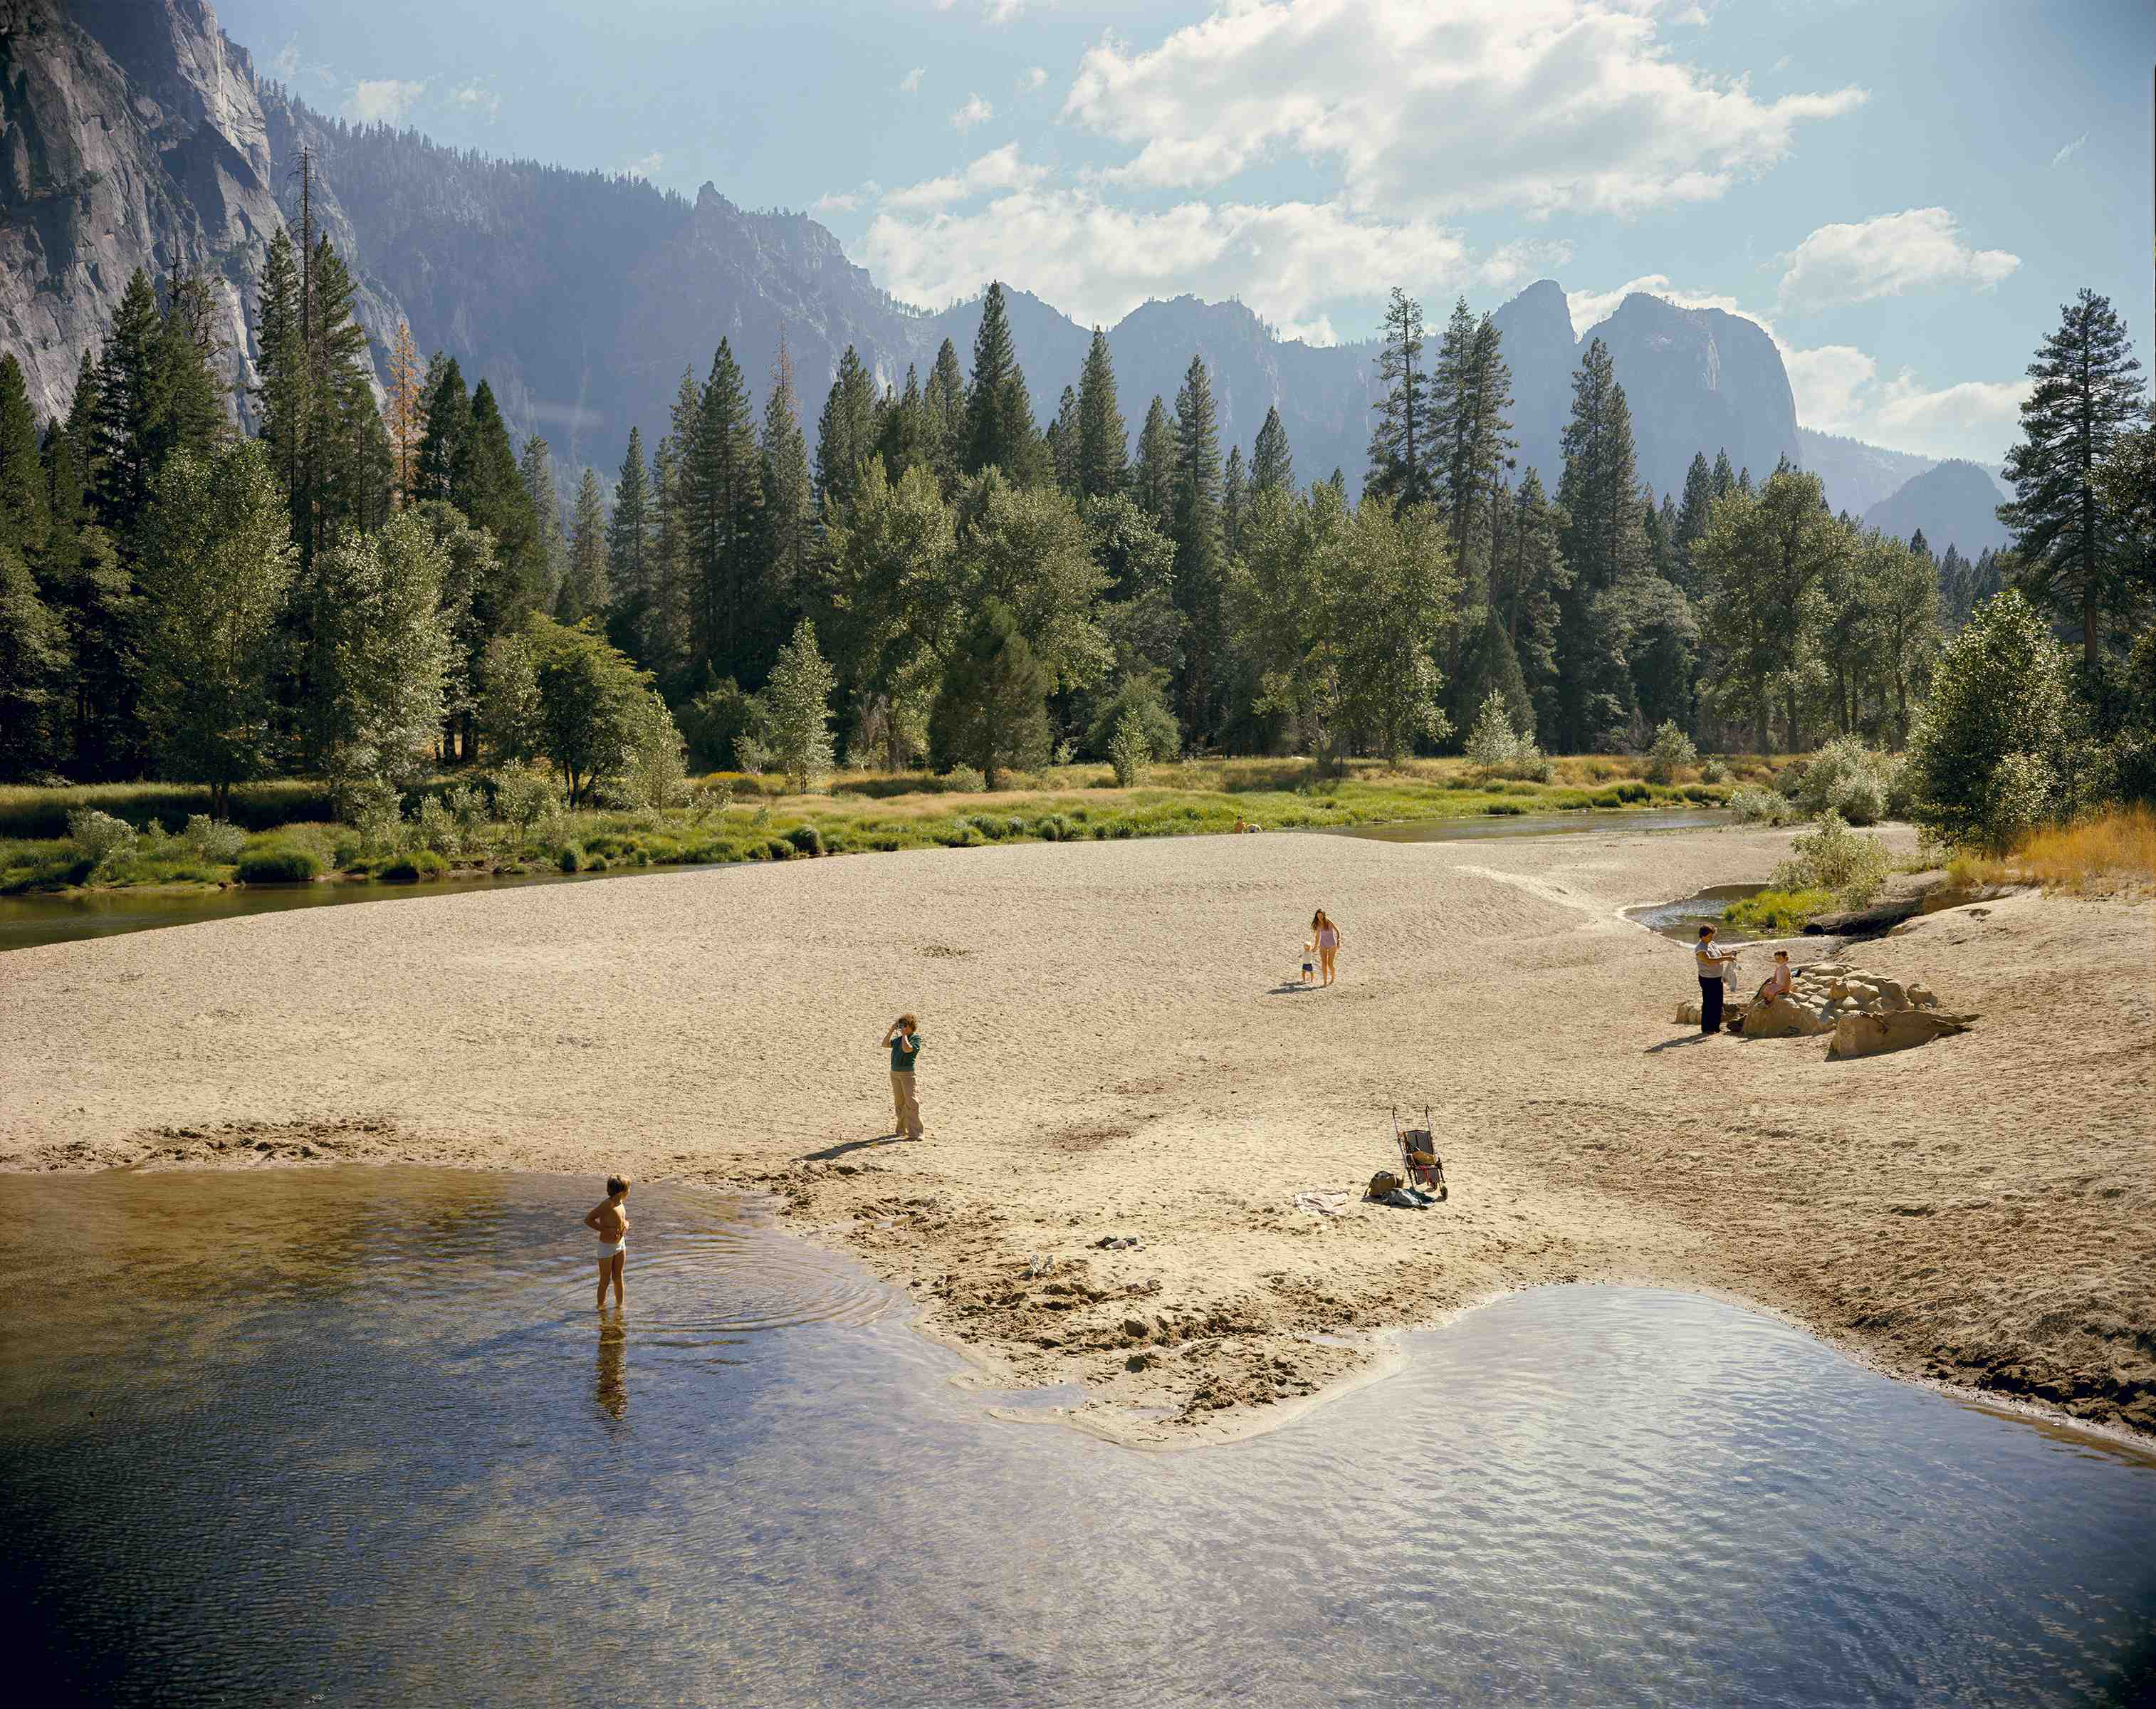 Merced River, Yosemite National Park, California, August 13, 1979. The Museum of Modern Art, New York. Gift of the artist. © 2017 Stephen Shore